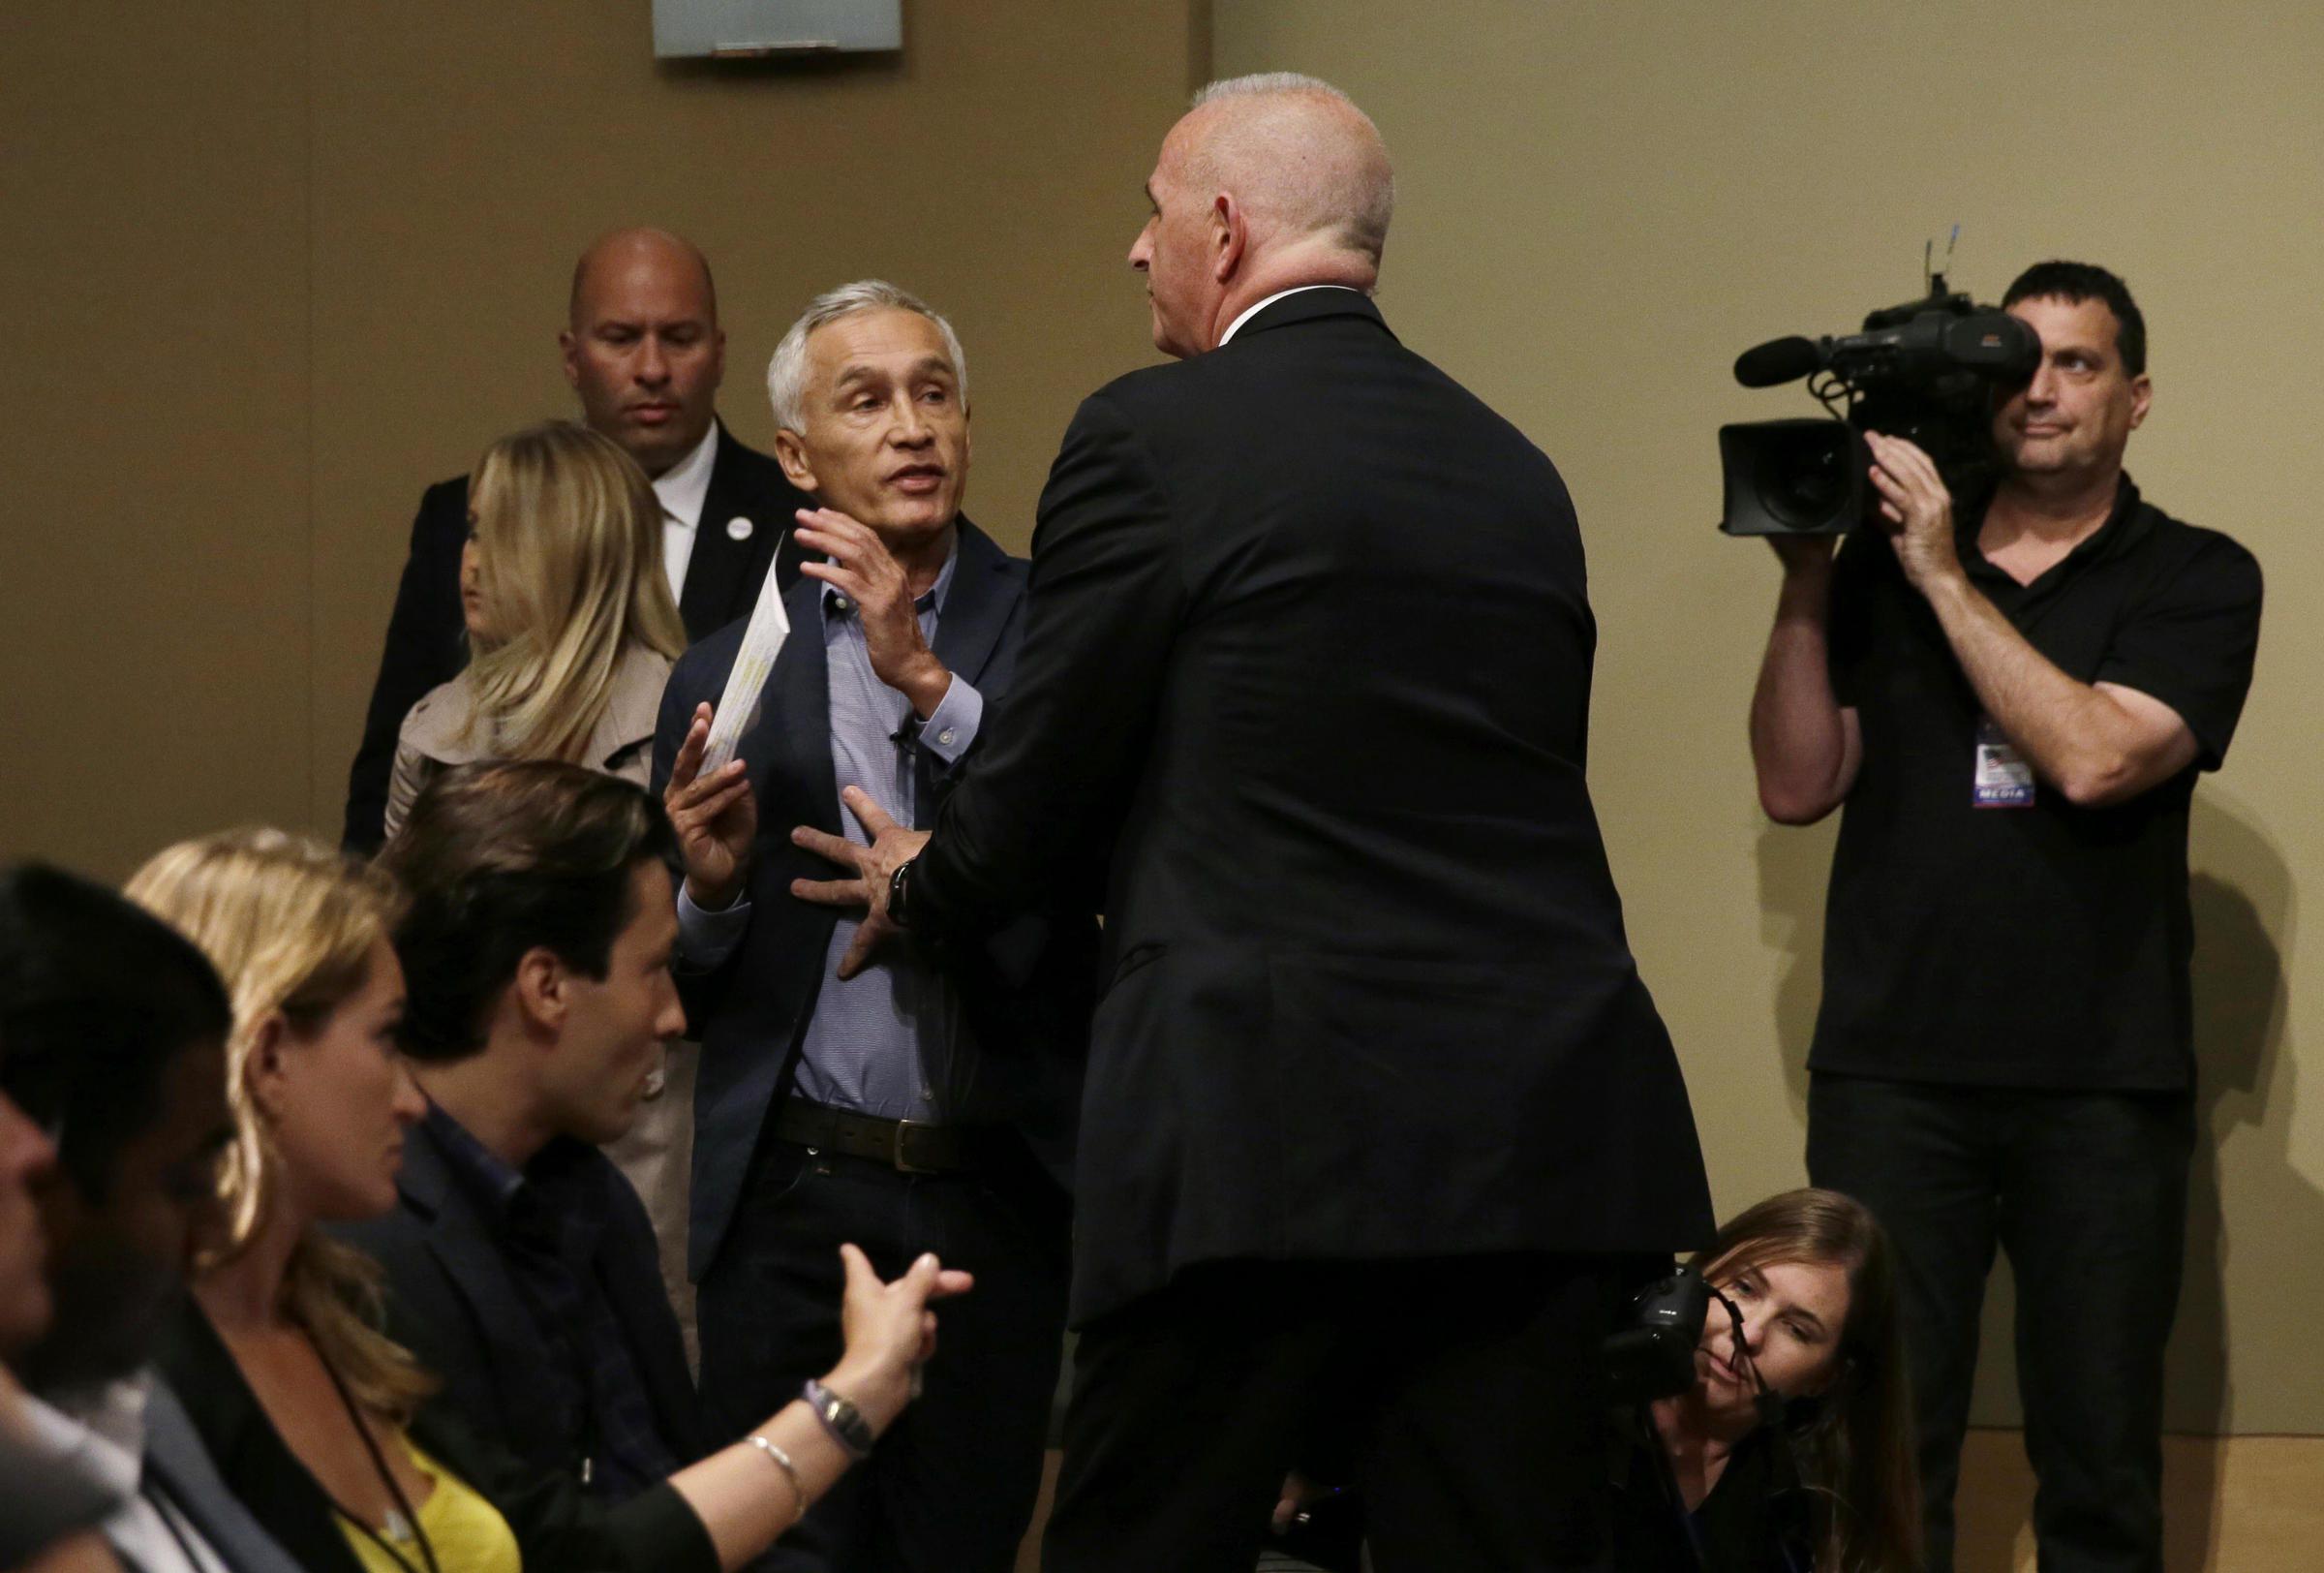 ... Donald Trump removes Univision anchor Jorge Ramos from a news